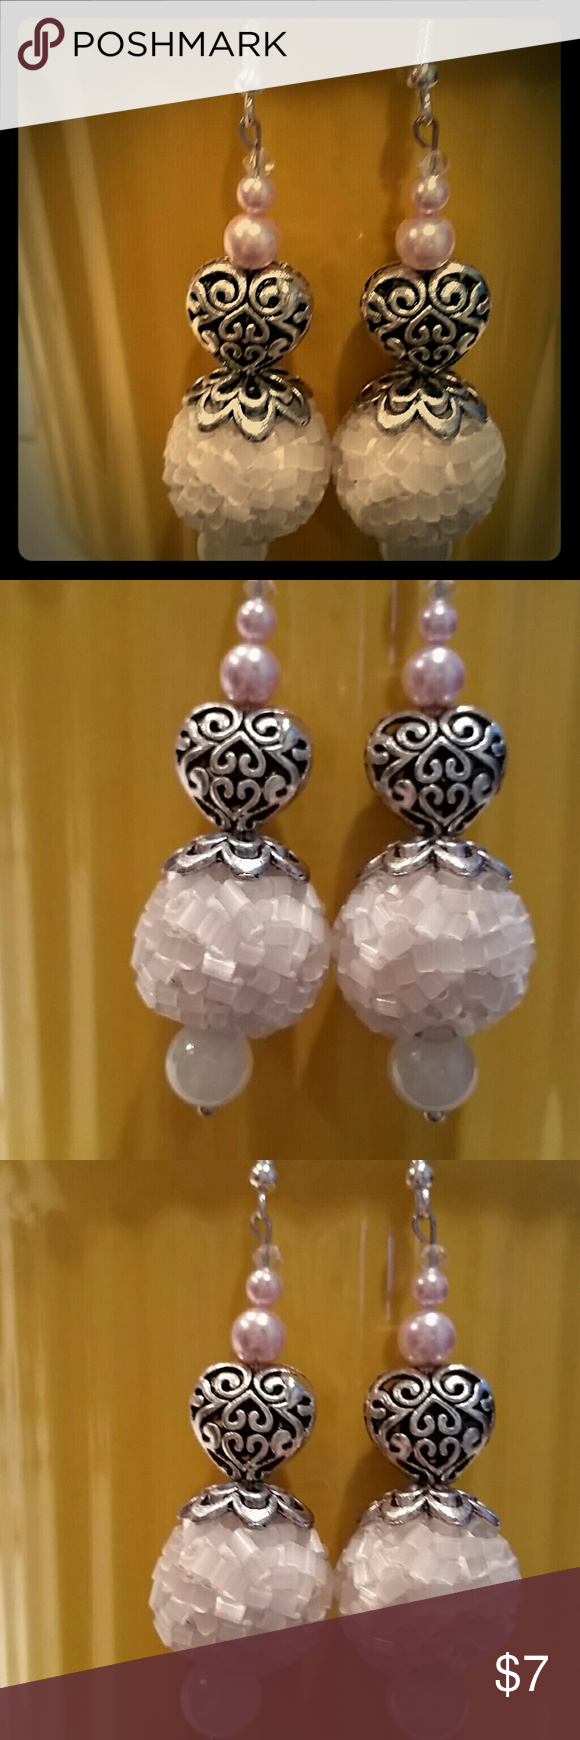 Handcrafted snowball, Swarovski Crystal Pearls Handcrafted Strikingly Beautiful pair of Earart! Always made of high quality beads and materials! Custom 1 of a kind designs! 4 pink Swarovski Crystal Pearls and tiny clear S.CRYSTALS top of pearls. Glass n nickel free metal AND REAL SILVER EAR HOOKS! ! !  #EARART  #1OFAKIND  #HANDCRAFTEDISTHEBOMB!! !  #ONLYUWILLHAVE! ! ! ! ! ! ! ! ! ! ! ! ! ! ! ! ! my own  Jewelry Earrings